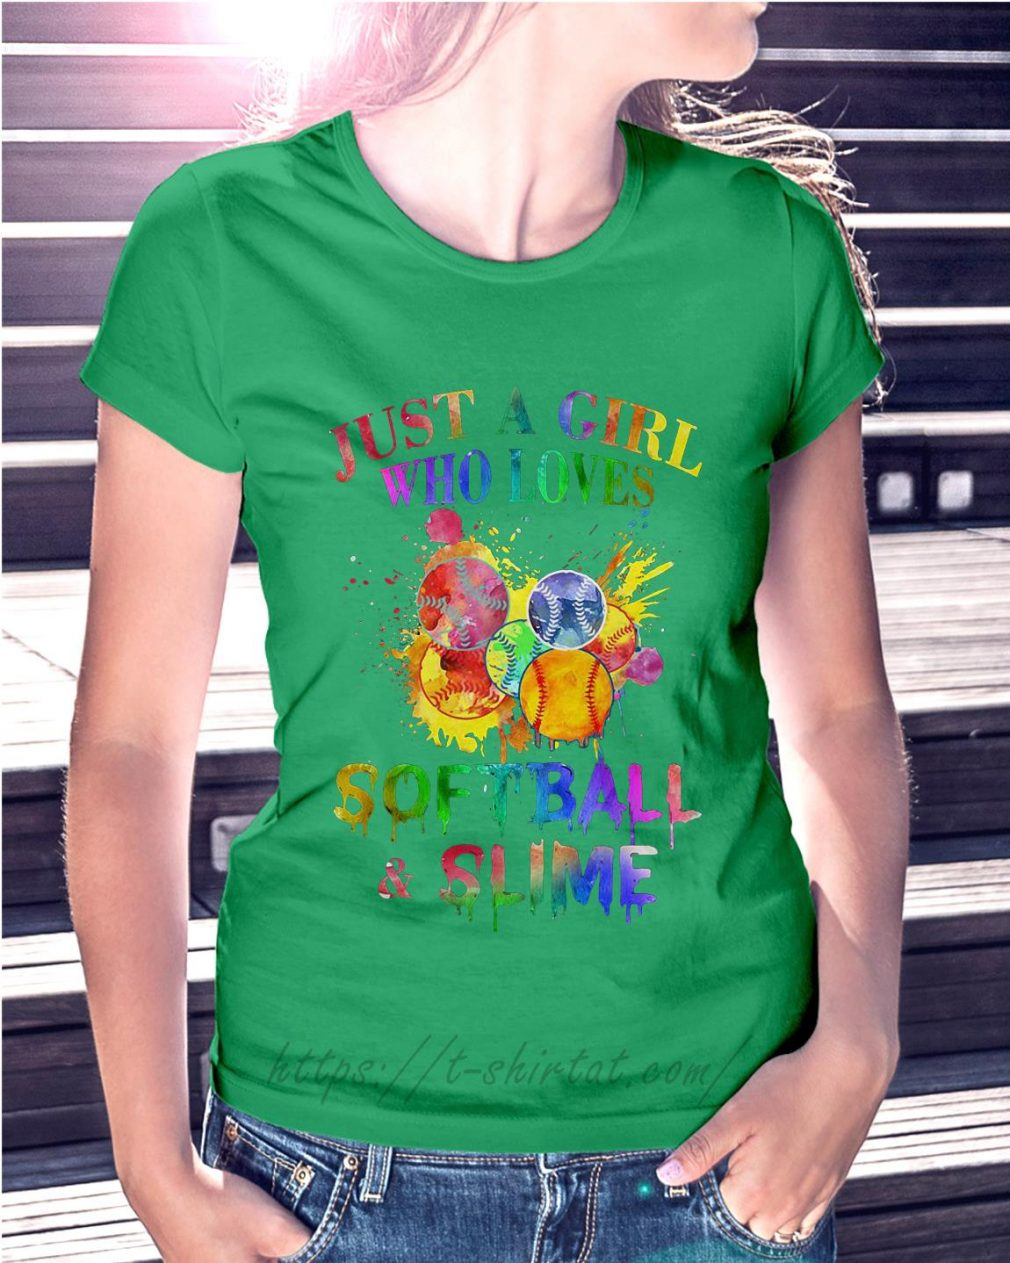 Just a girl who loves softball and slime Ladies Tee green